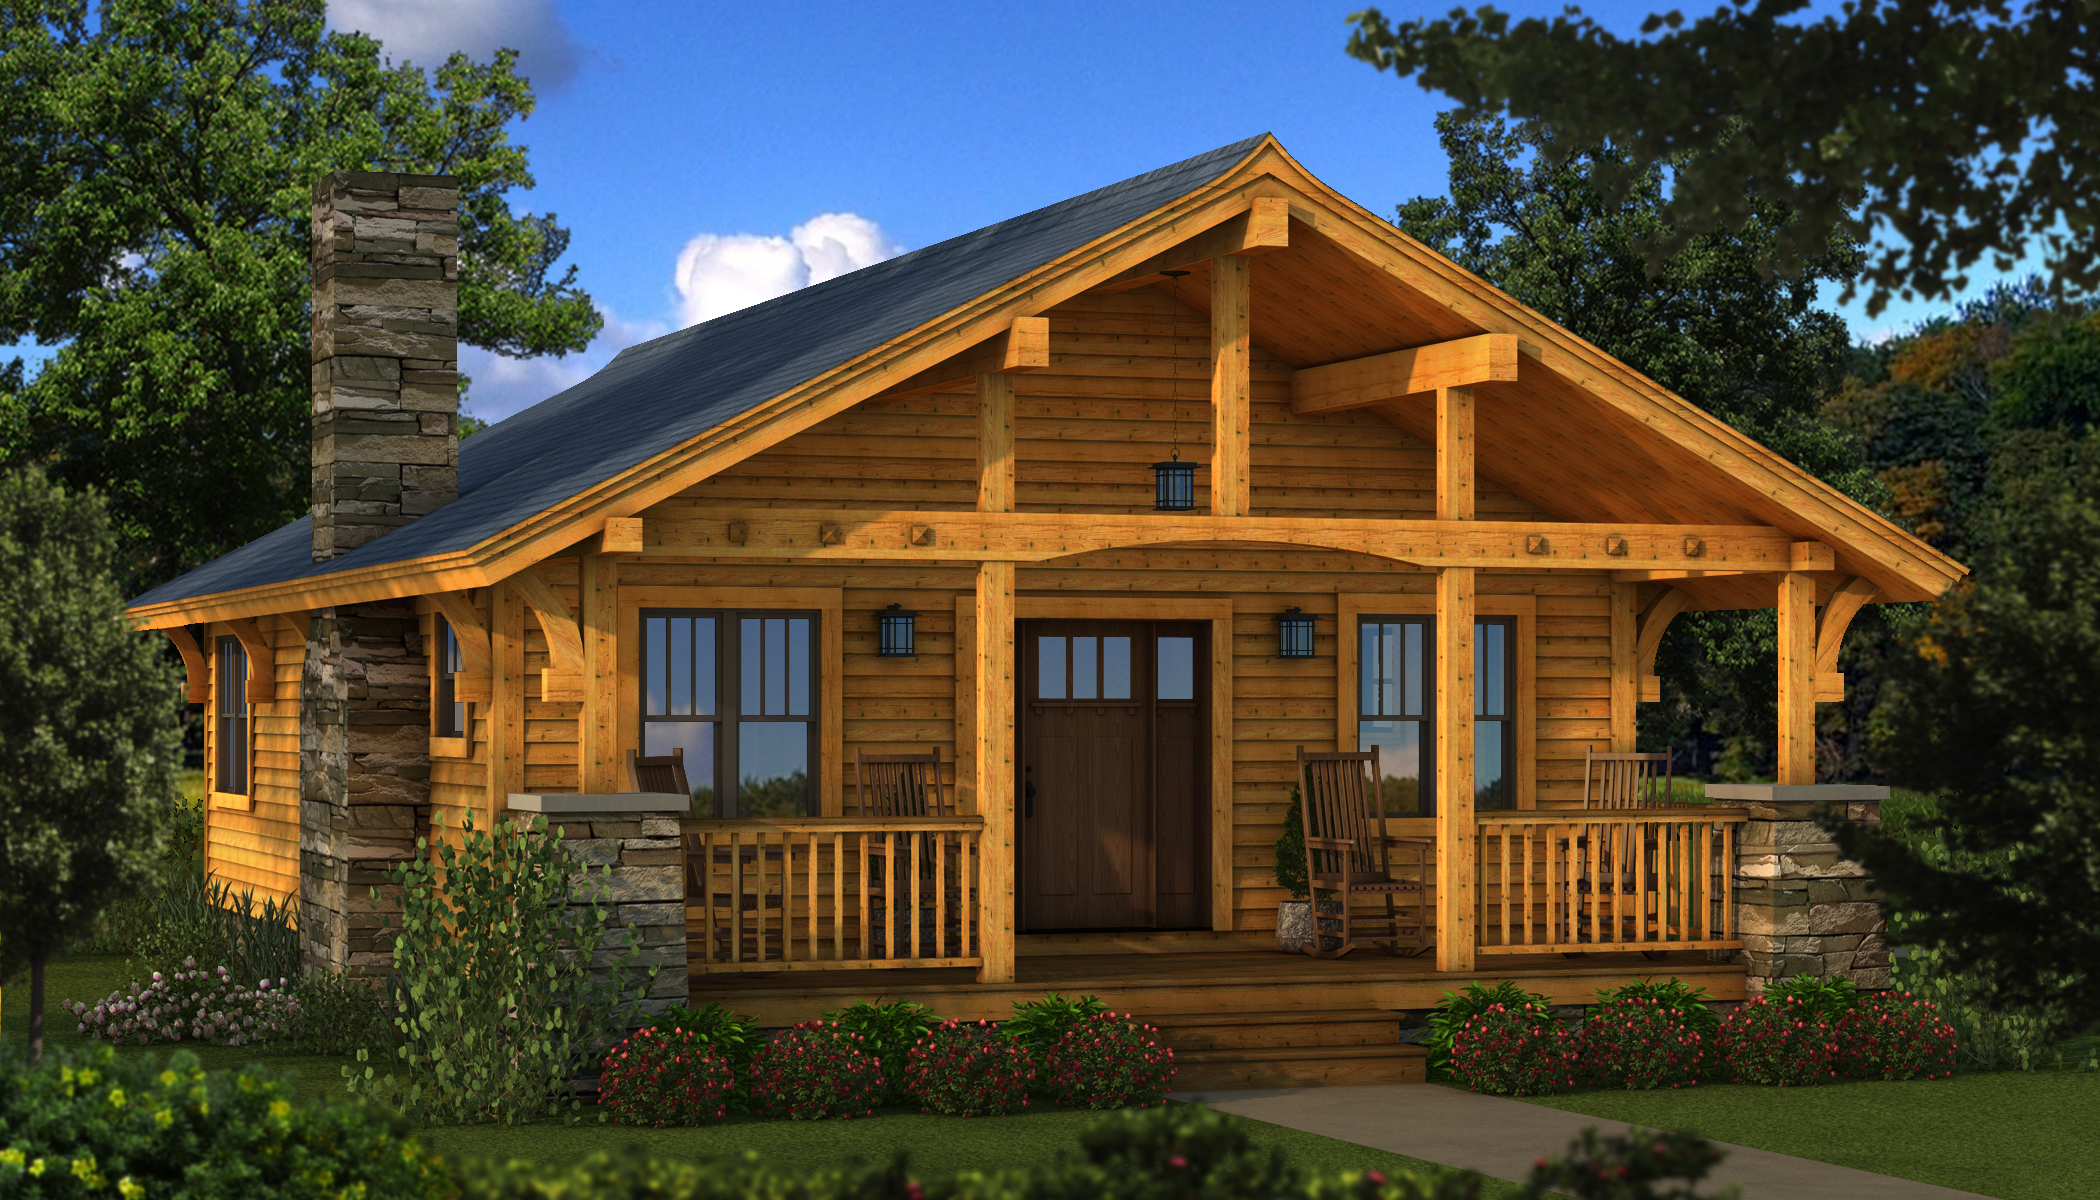 Bungalow 2 - Plans & Information | Southland Log Homes